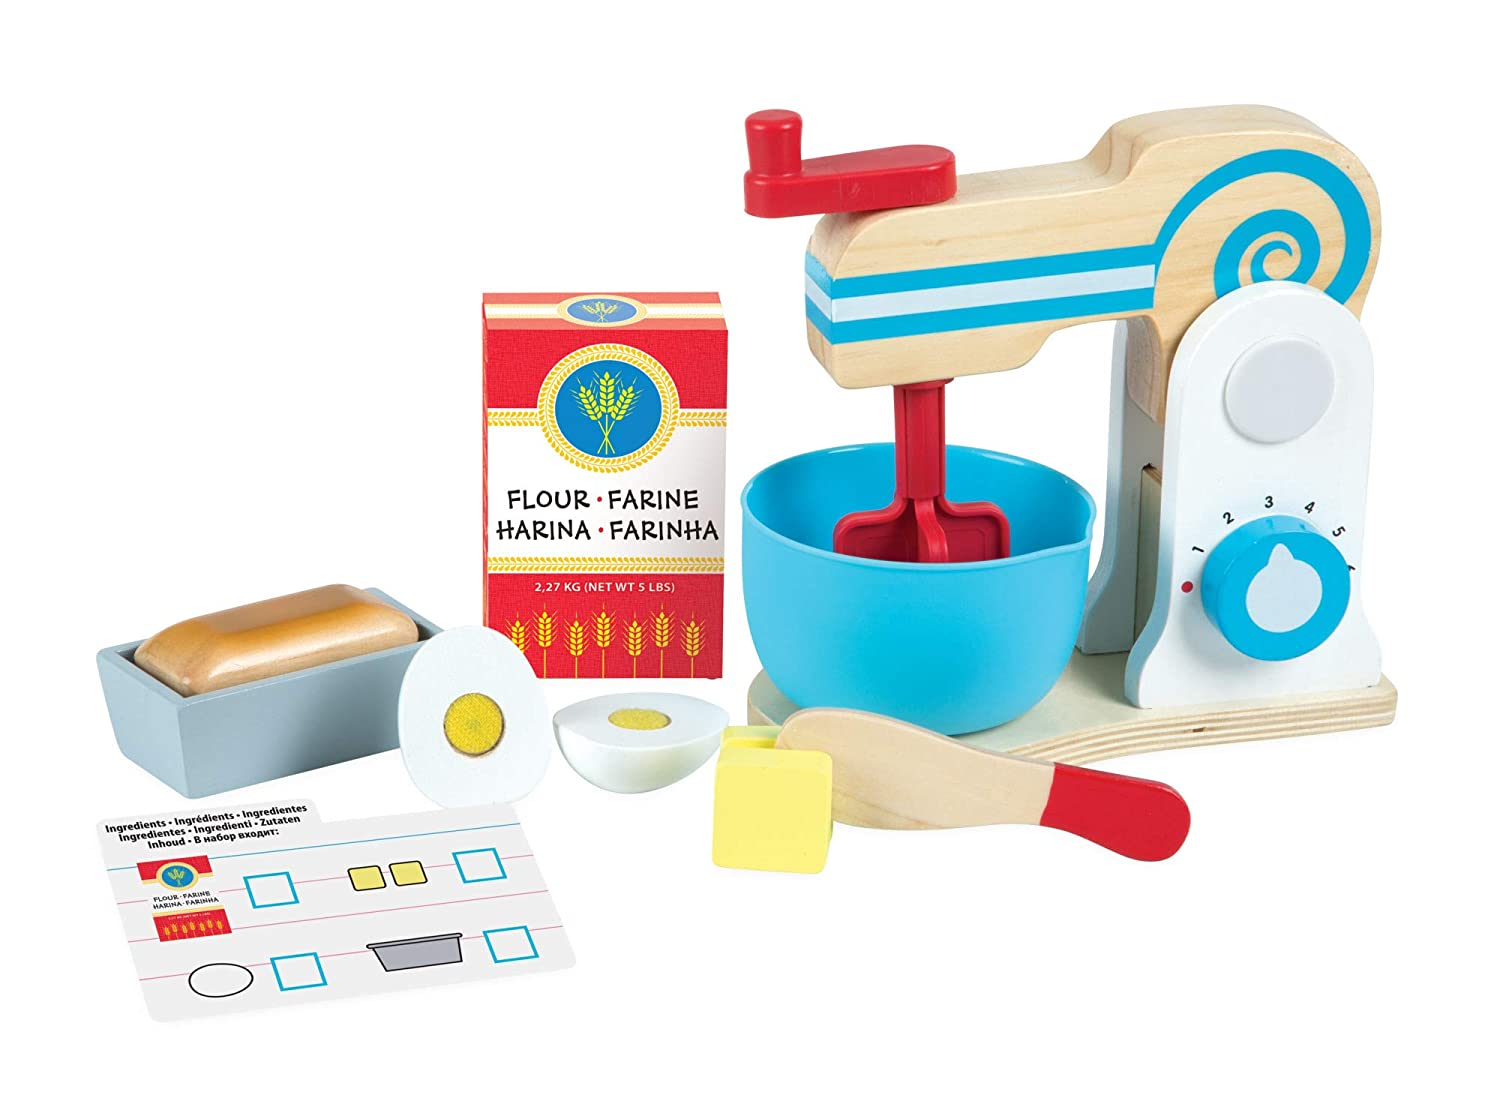 Melissa & Doug Wooden Make-a-Cake Mixer Set, 19840: Amazon.es: Juguetes y juegos